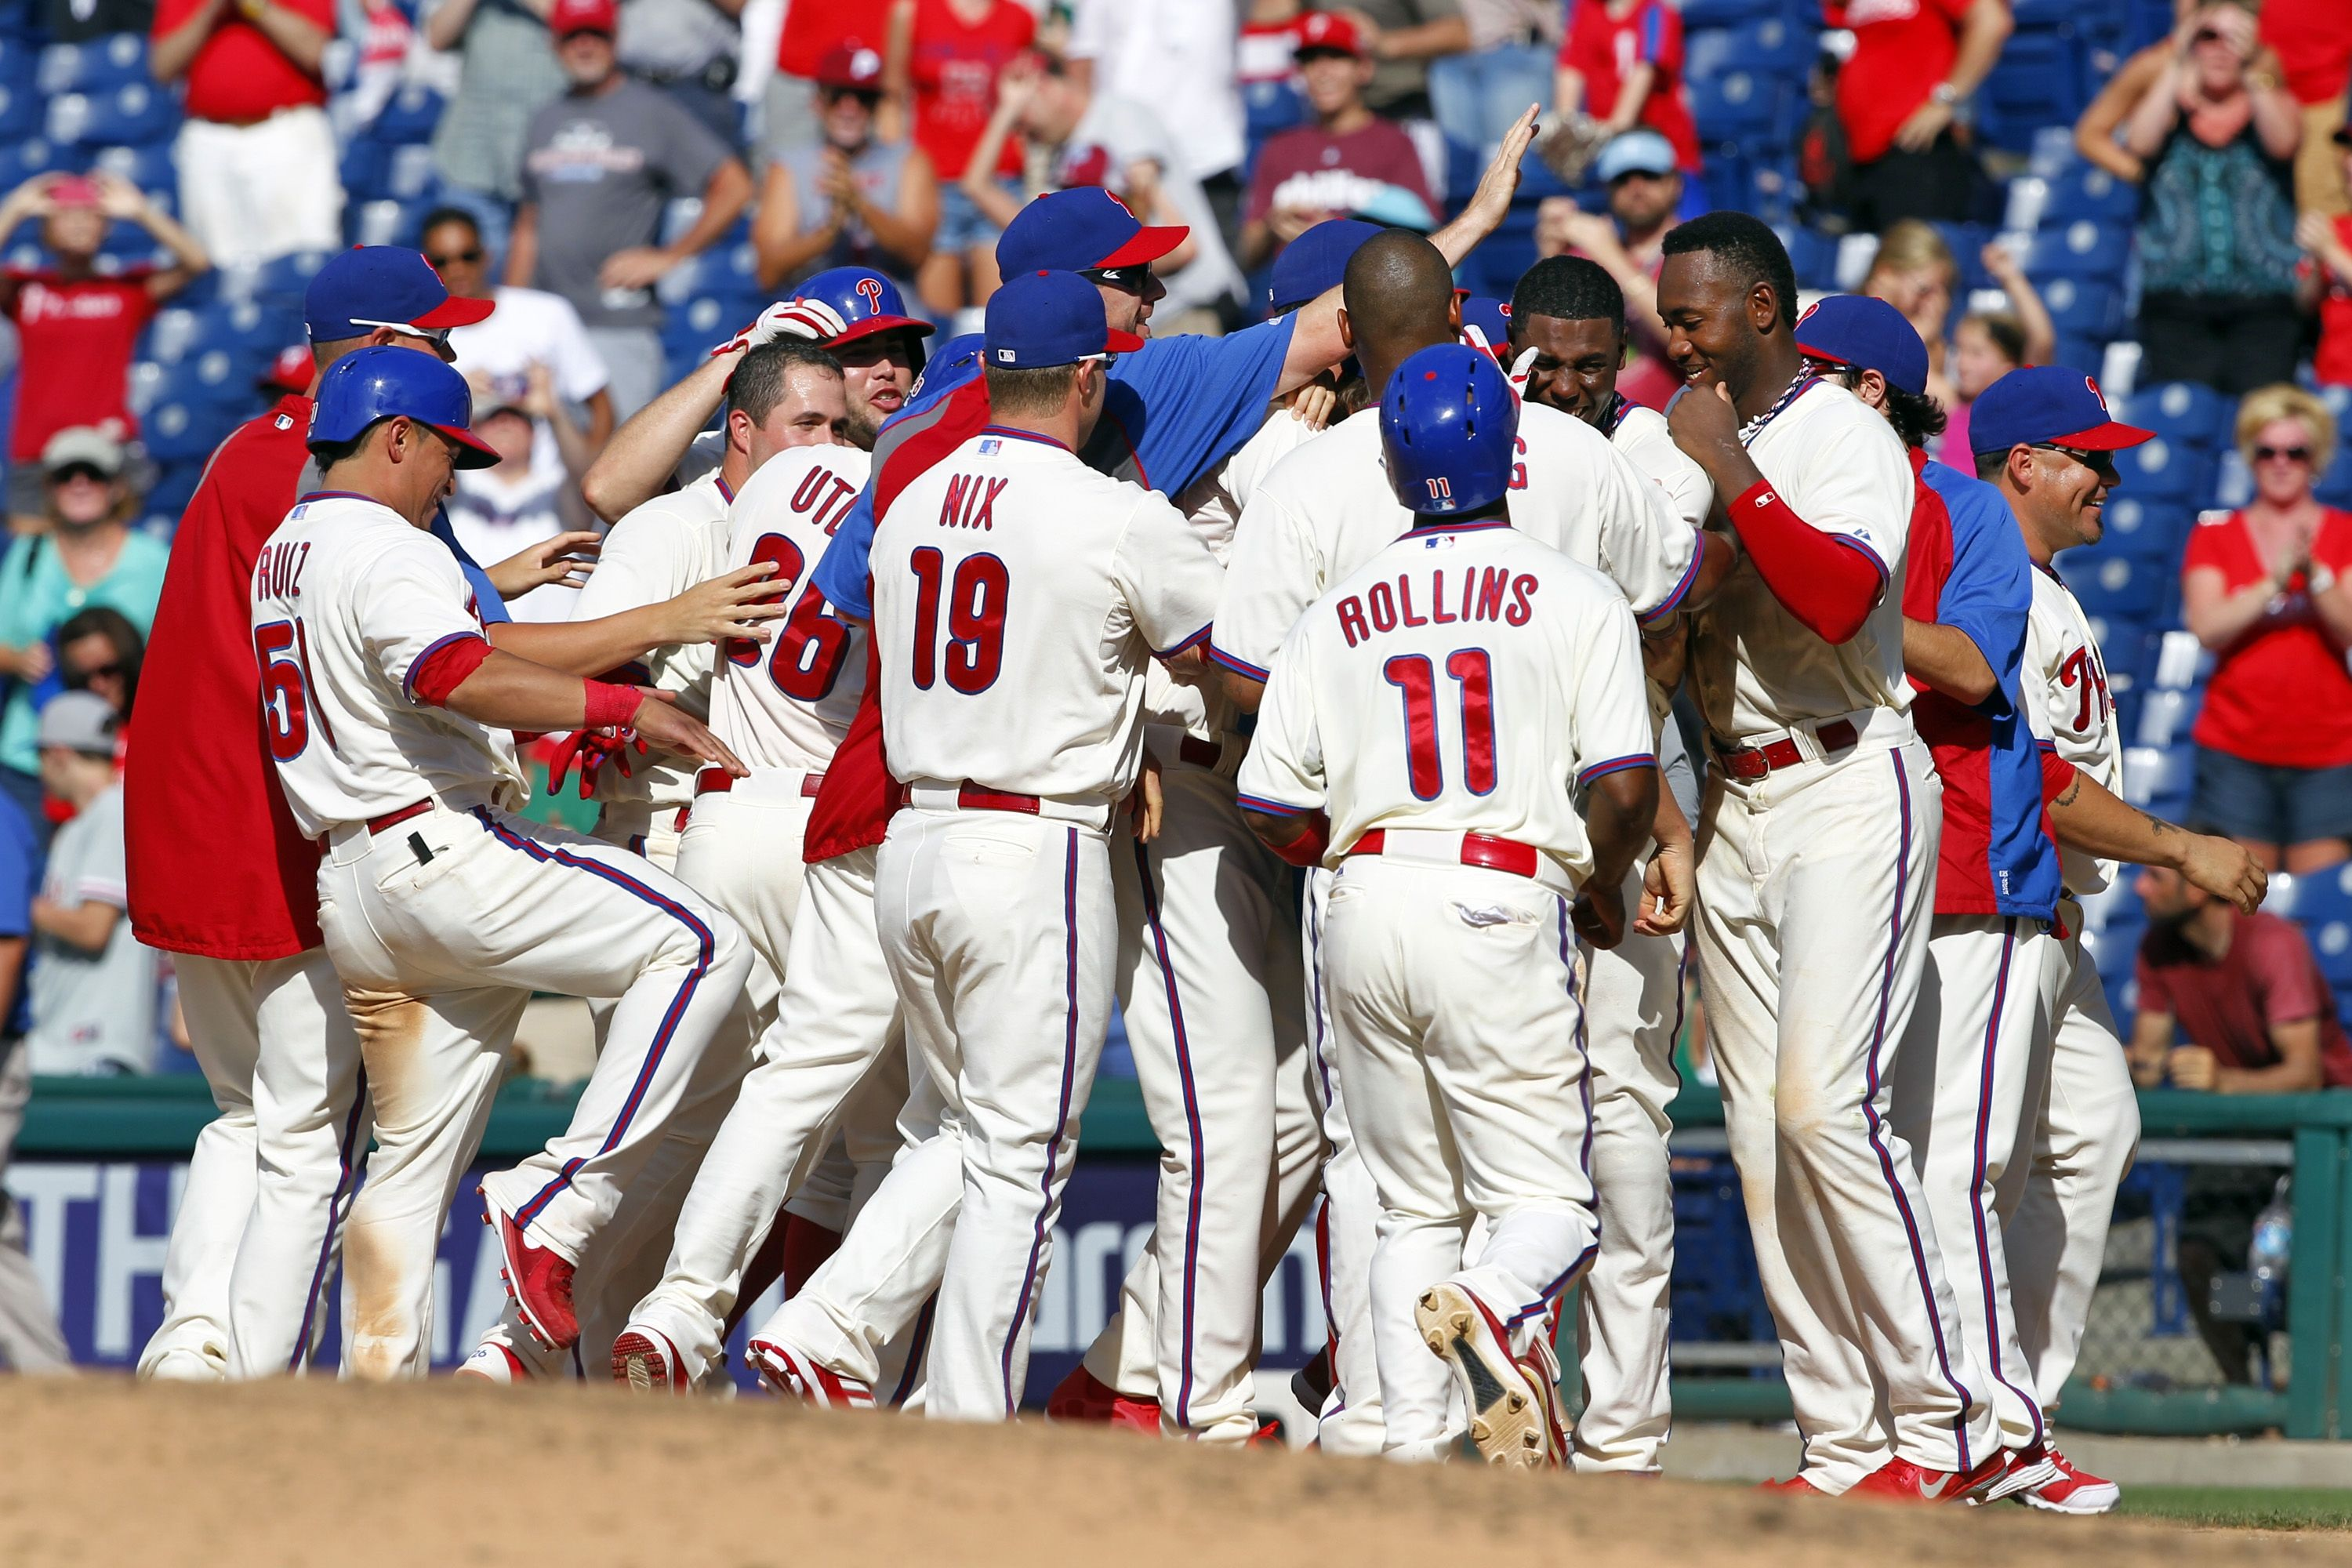 John Mayberry Jr Hit A Walk Off Single In The 10th Inning Of The Phillies 4 3 Win Over The White Sox To Brin Phillies Philadelphia Phillies Chicago White Sox